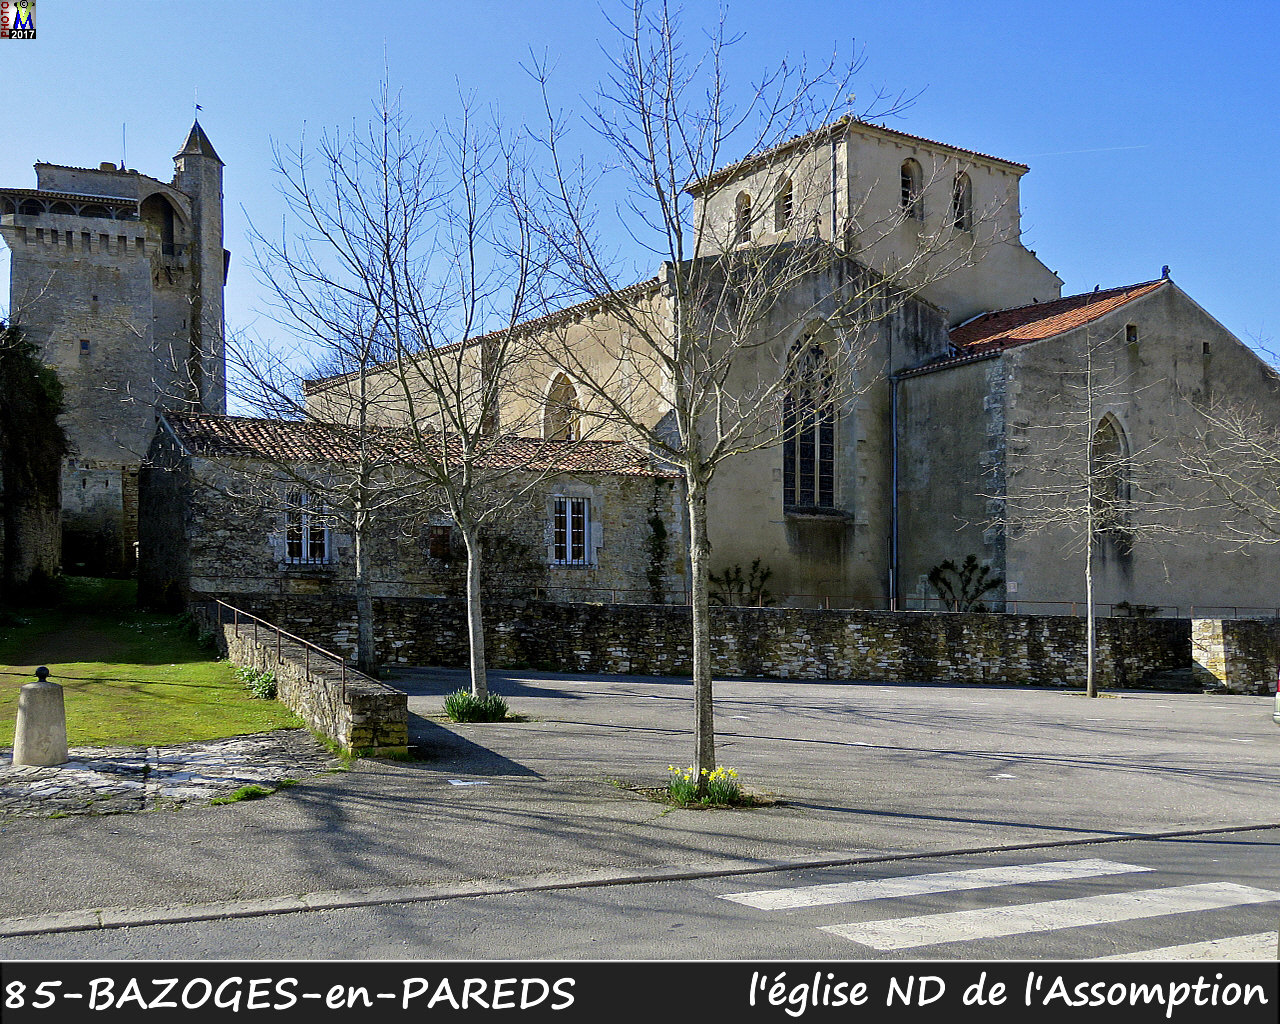 85BAZOGES-PAREDS_eglise_1002.jpg